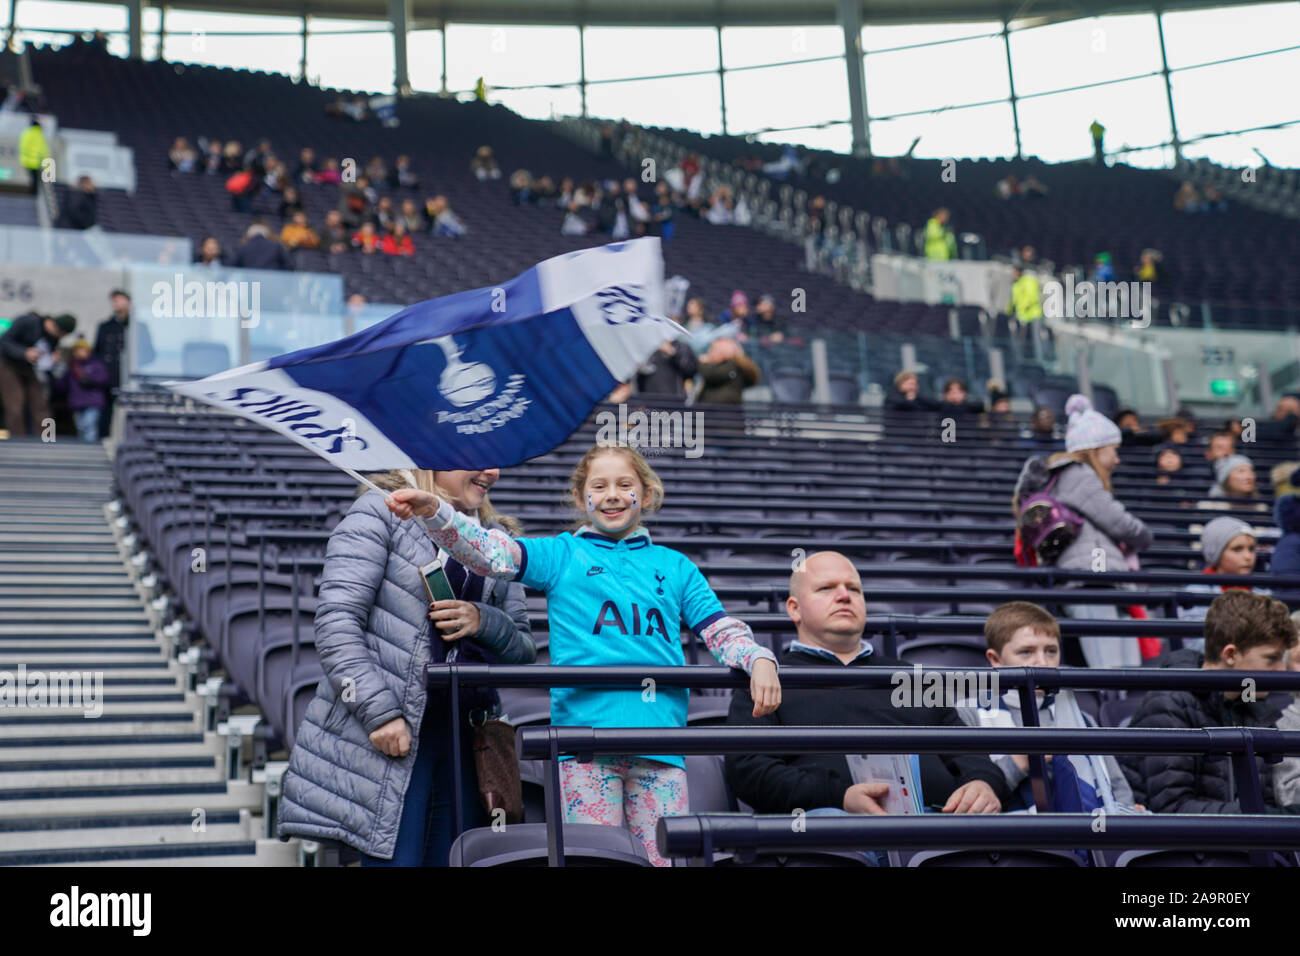 London, UK. 17th Nov, 2019. Tottenham Hotsupr fan during the Barclay's FA Women's Super League football match between Tottenham vs Arsenal at Tottenham Hotspur Stadium on November 17, 2019 in London, England (Photo by Daniela Porcelli/SPP) Credit: SPP Sport Press Photo. /Alamy Live News Stock Photo